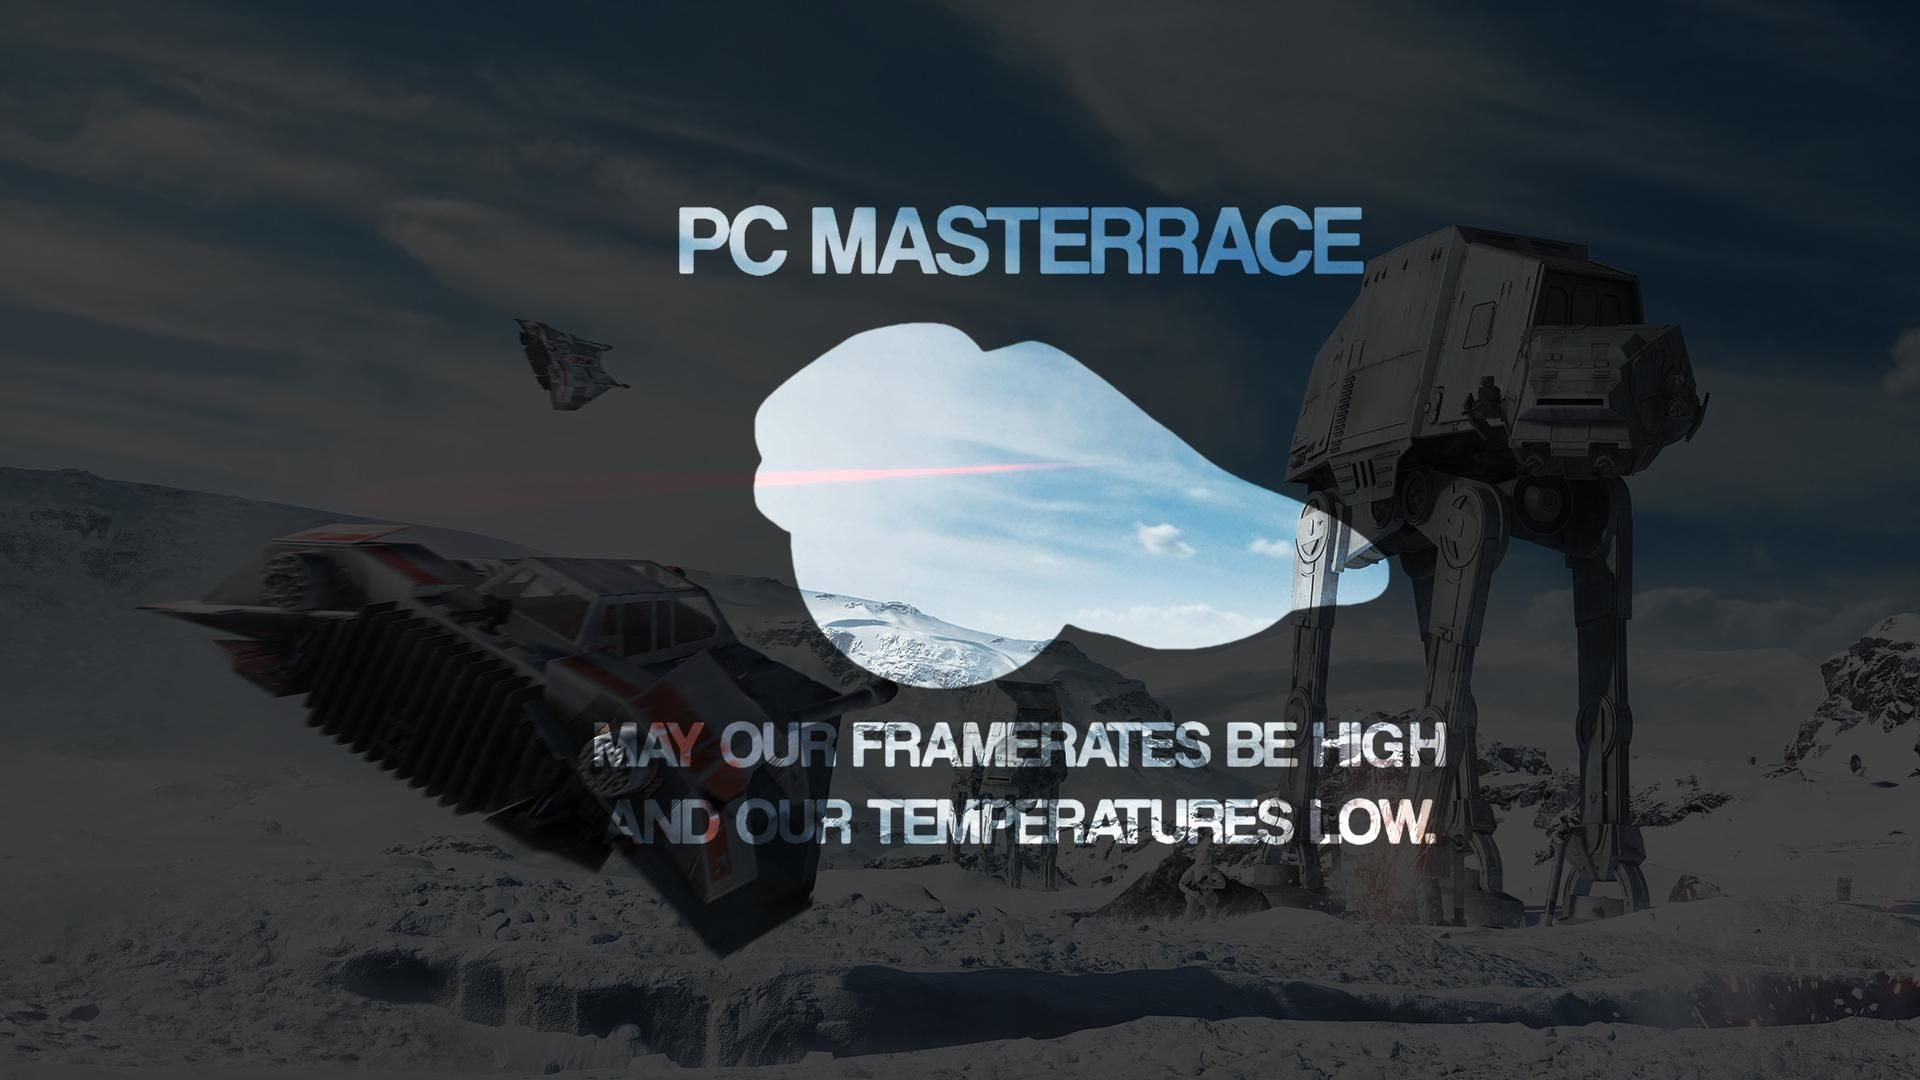 Glorious PCMasterRace Wallpaper/Star Wars Wallpaper 1920x1080 Need #iPhone # 6S #Plus #